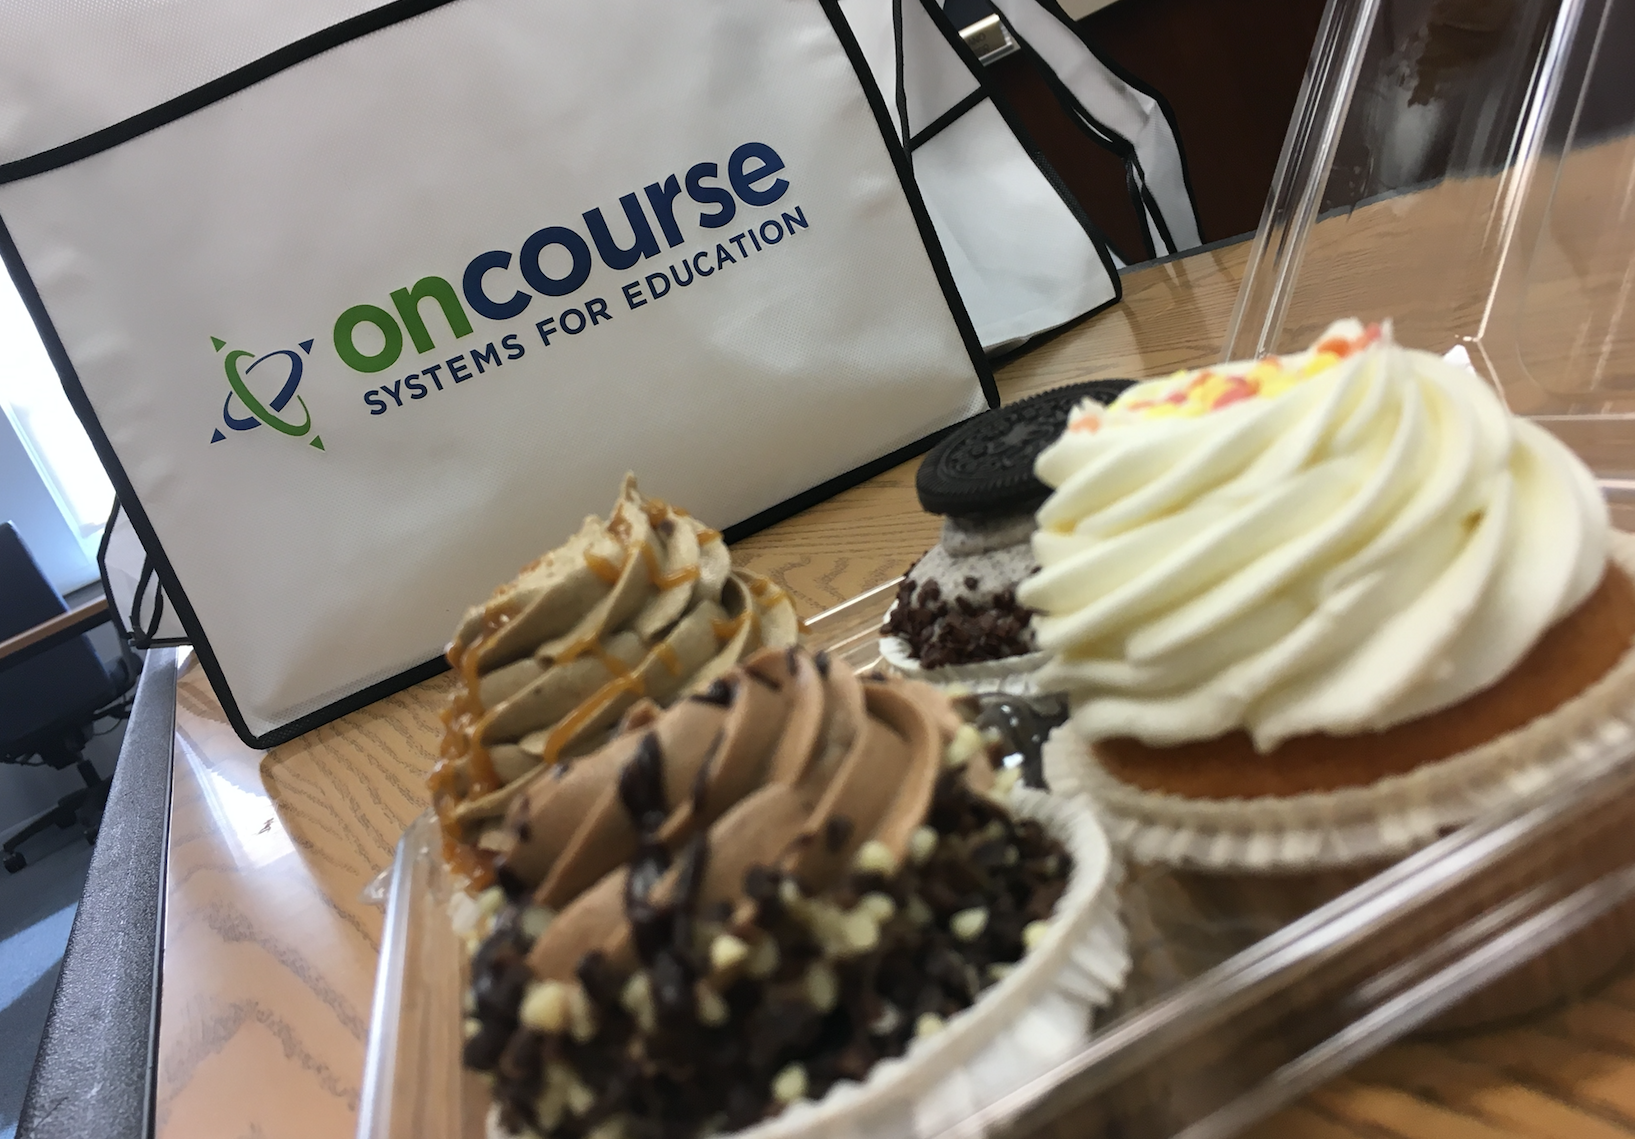 OnCourse EdTech Summit 2016 Cupcakes.png